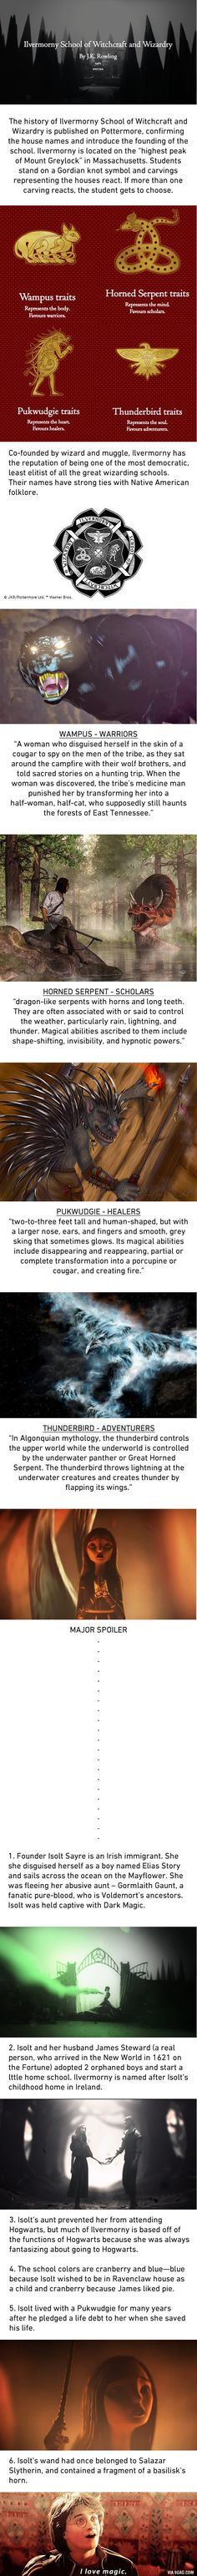 JK Rowling Reveals 6 Magical Facts Of America's Wizarding School - 9GAG